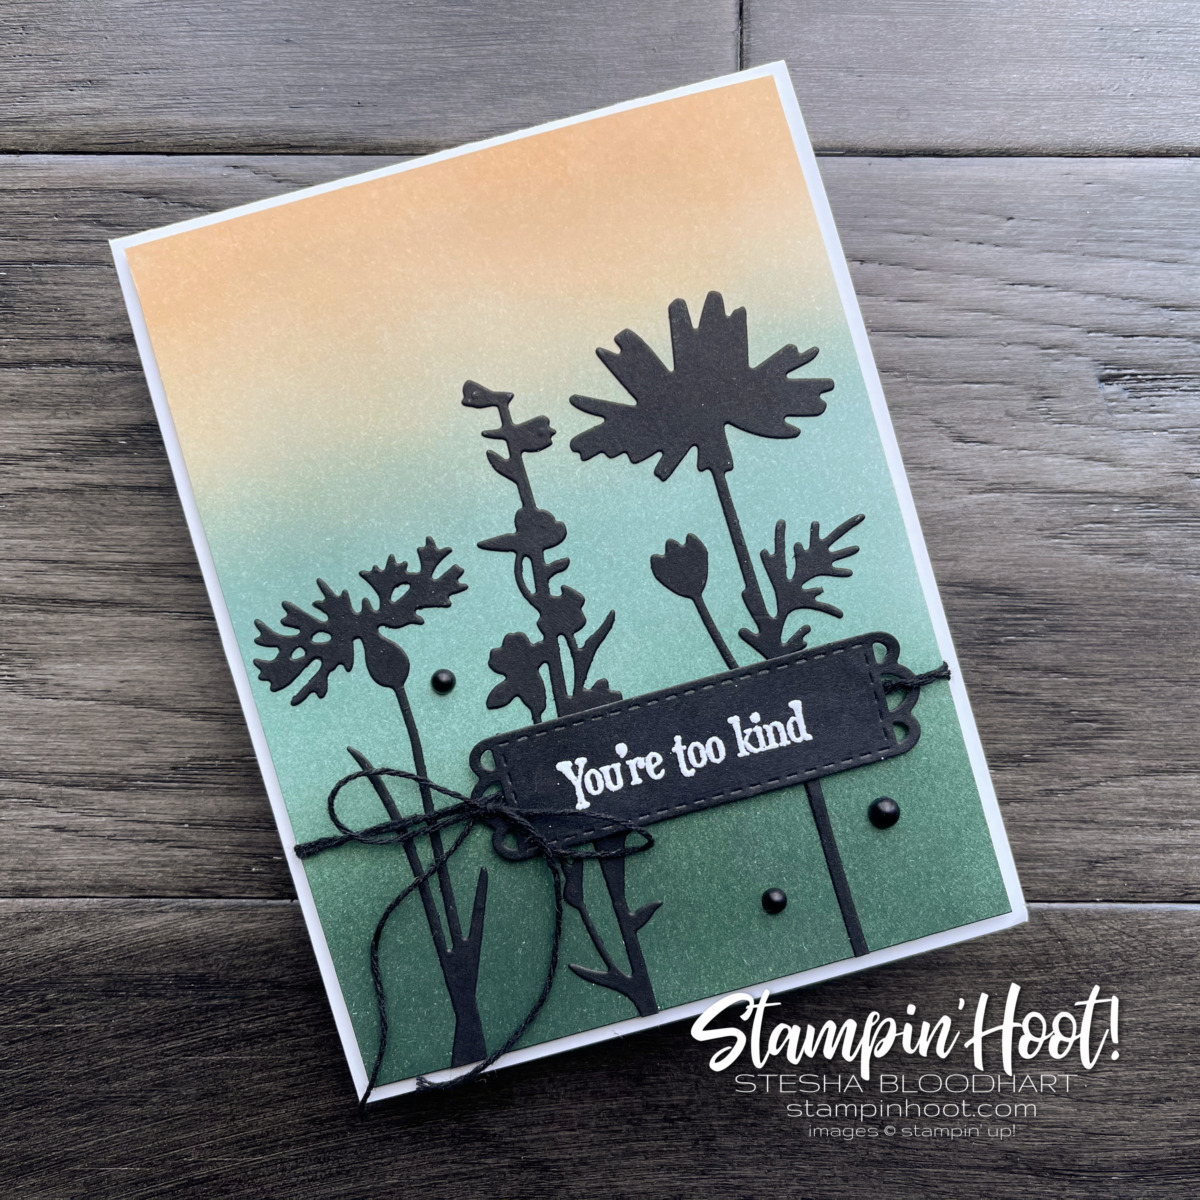 New In Color 2021-2023 Ombre Background Quiet Meadow Bundle from Stampin' Up! Sneak Peek by Stesha Bloodhart, Stampin' Hoot!